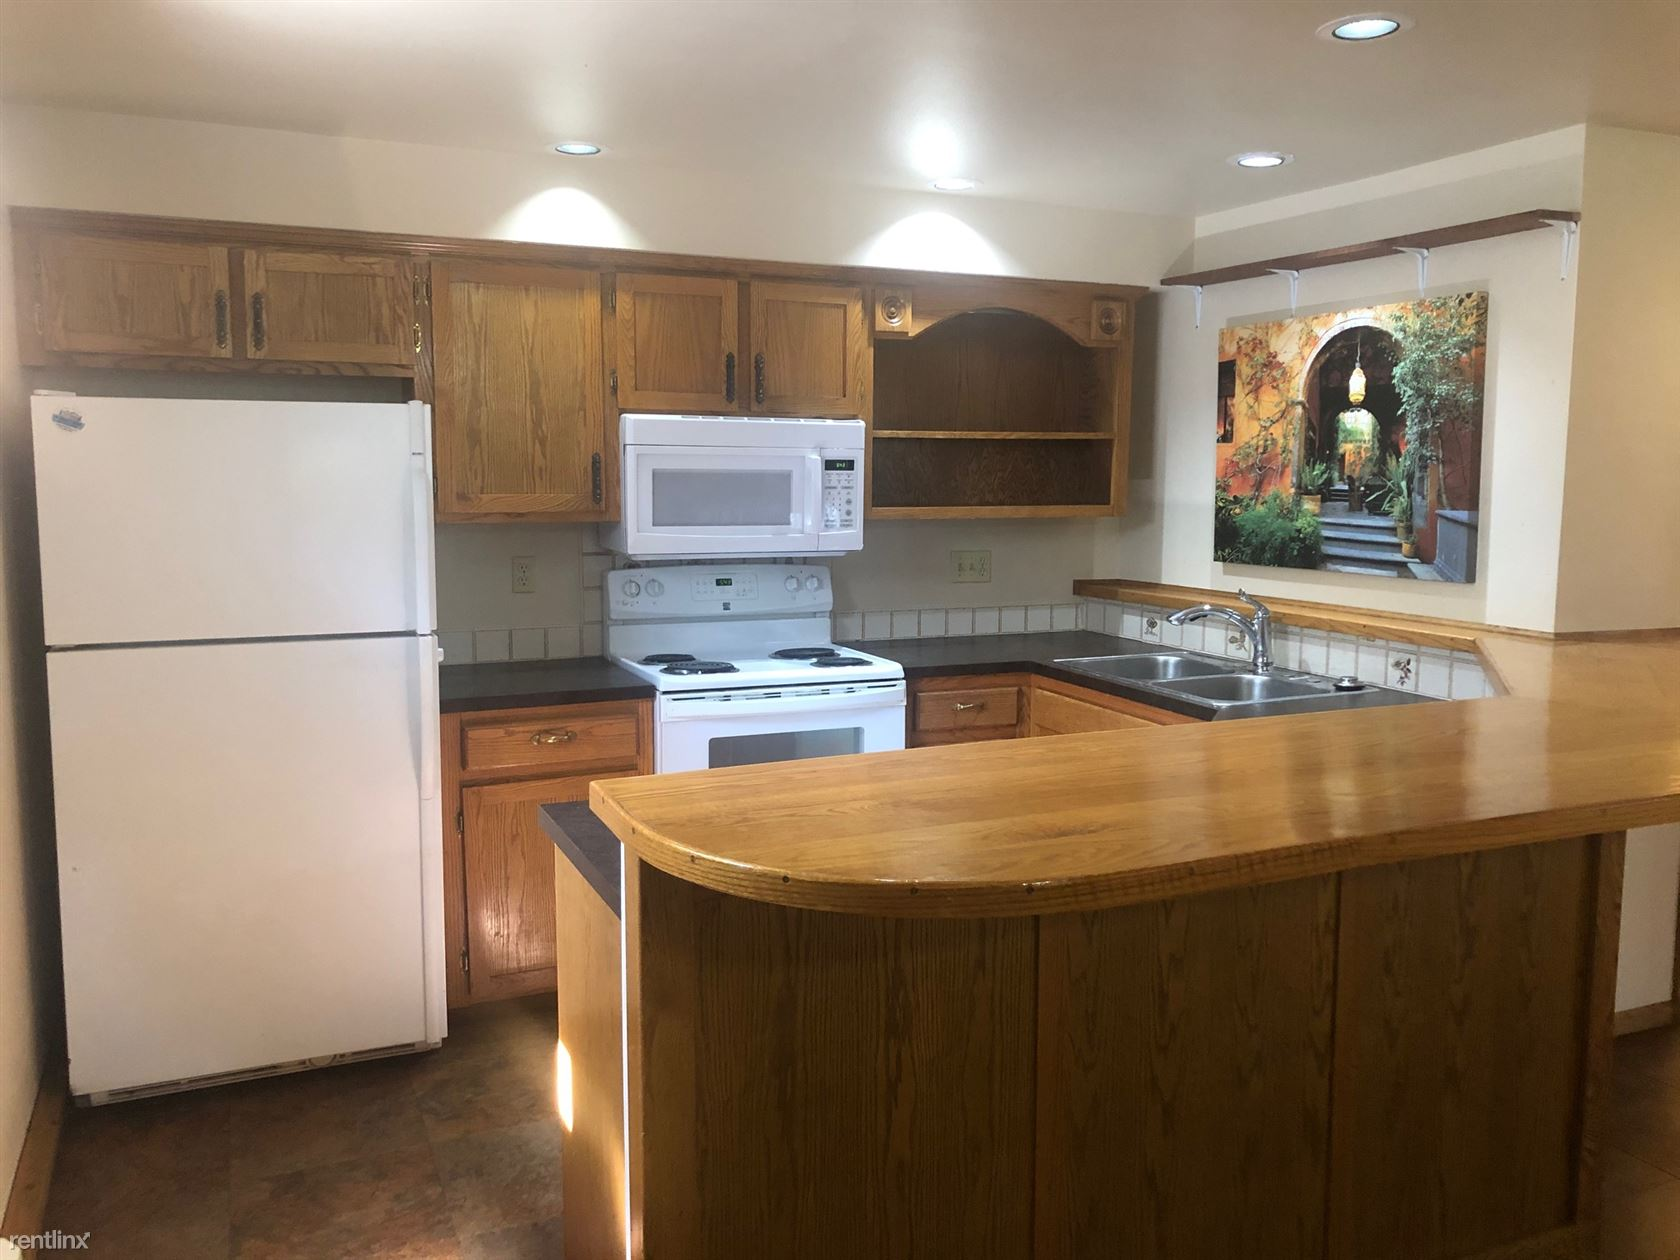 Apartment for Rent in Fort Collins